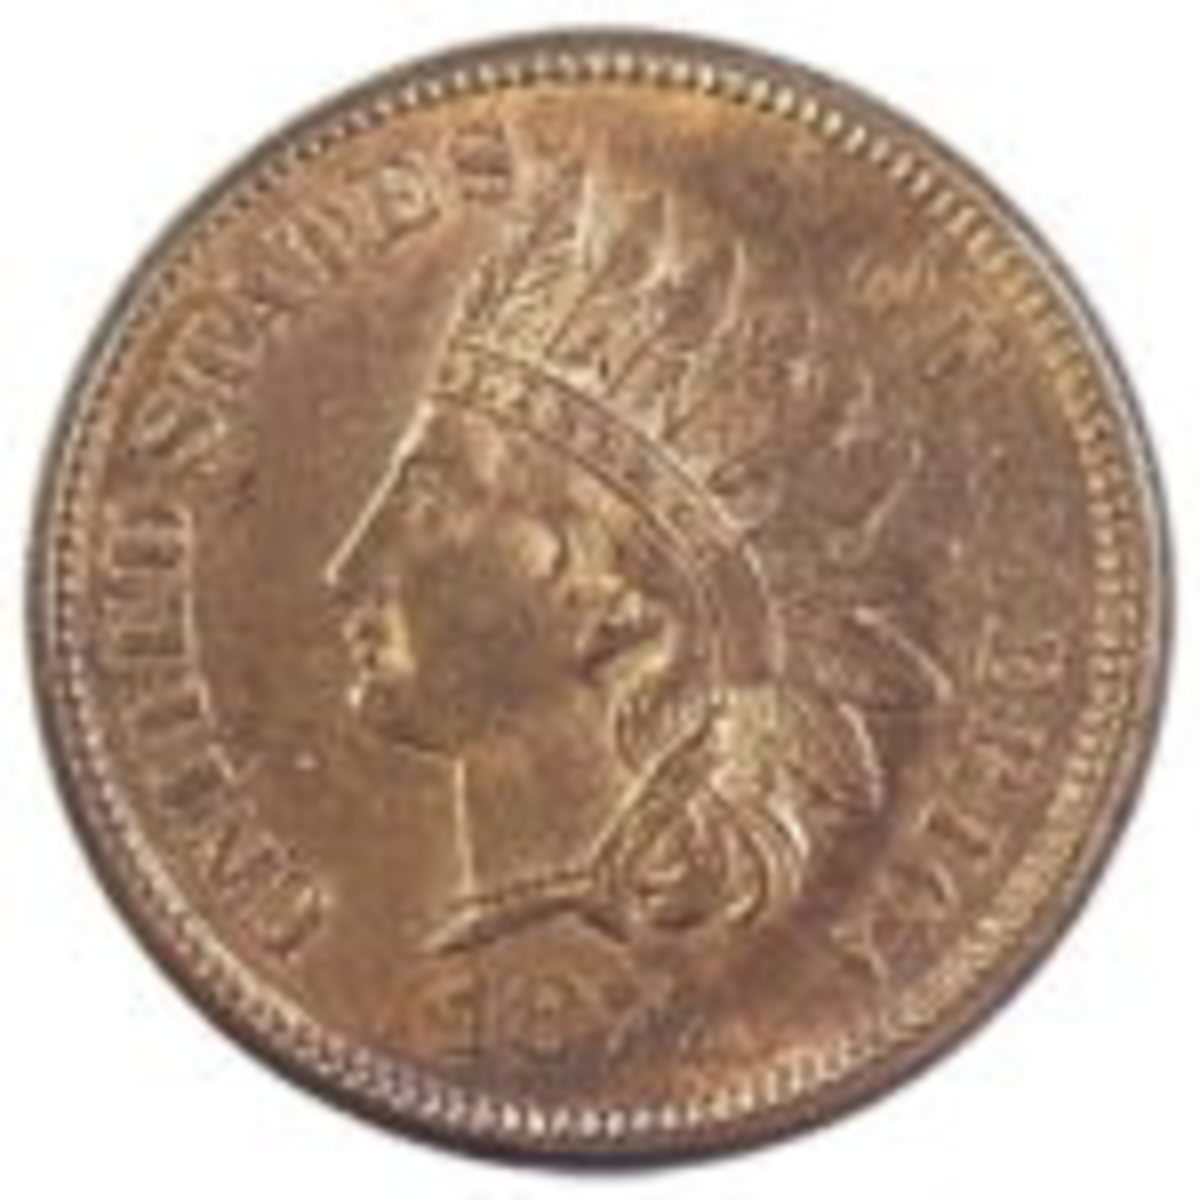 choice 1877 Indian head cent